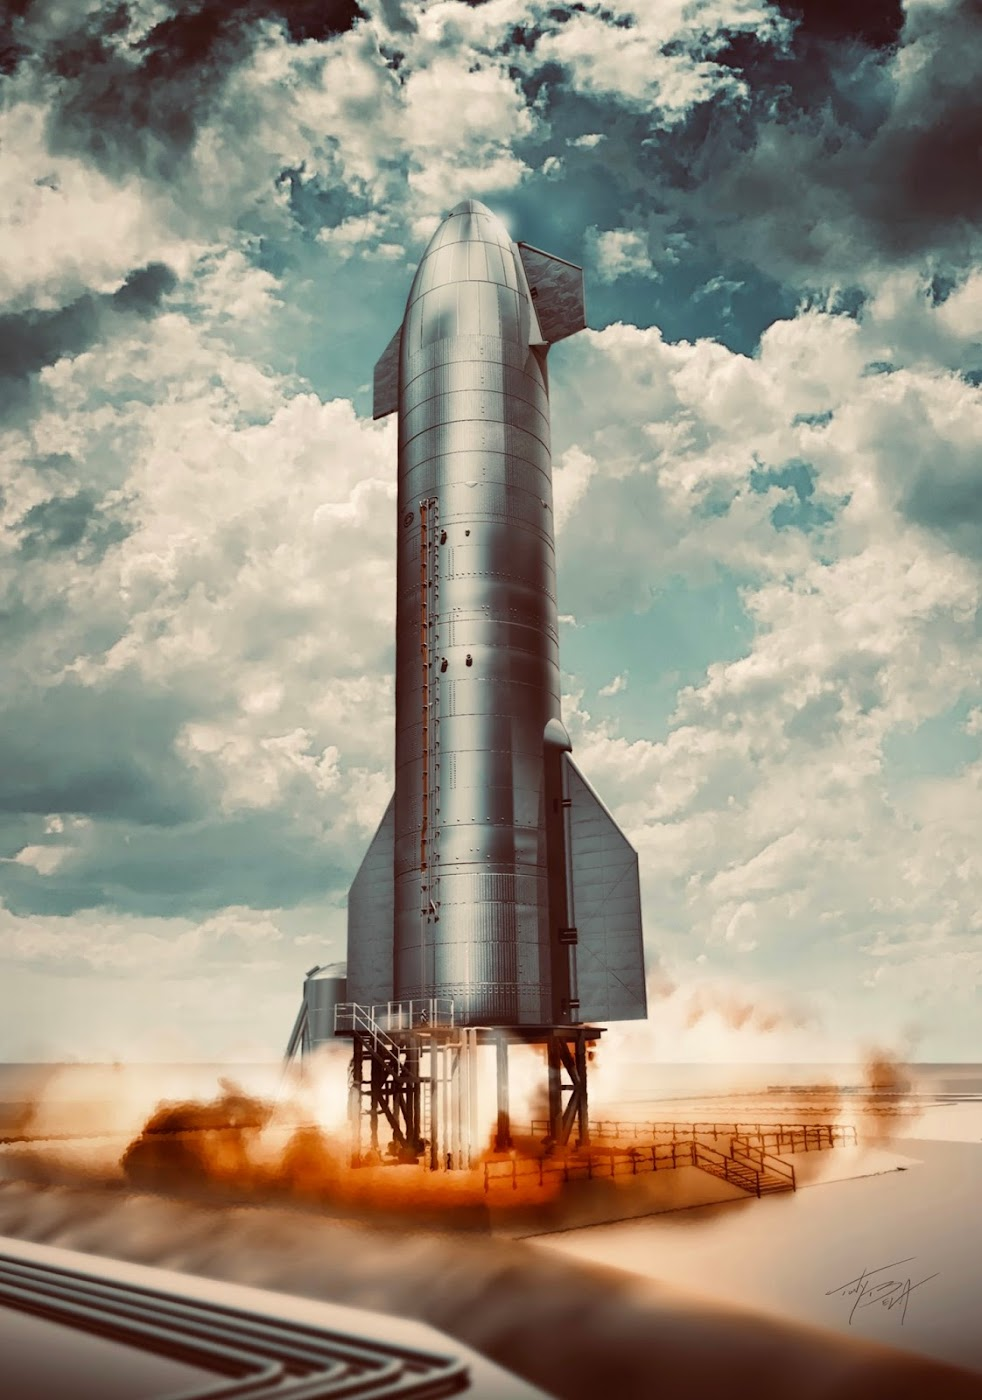 Poster of SpaceX's Starship SN8 on launch stand by Tony Bela